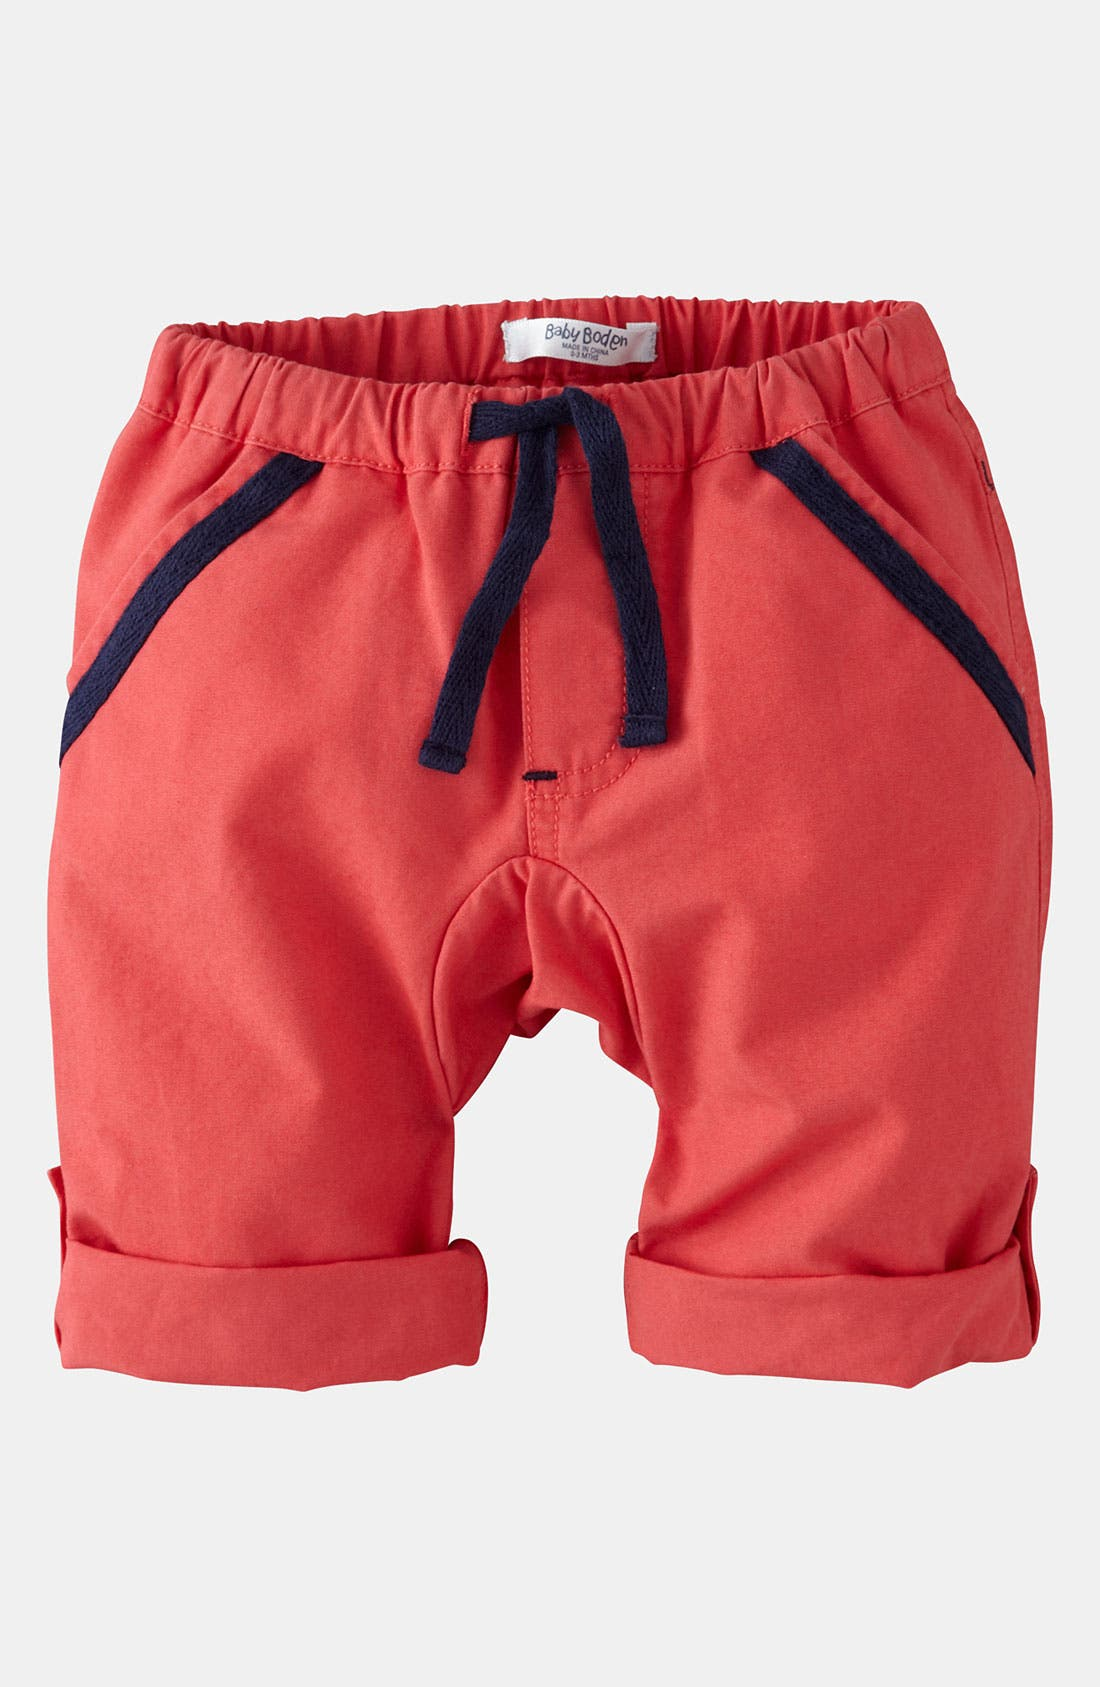 Main Image - Mini Boden 'Roll Up' Pants (Baby)